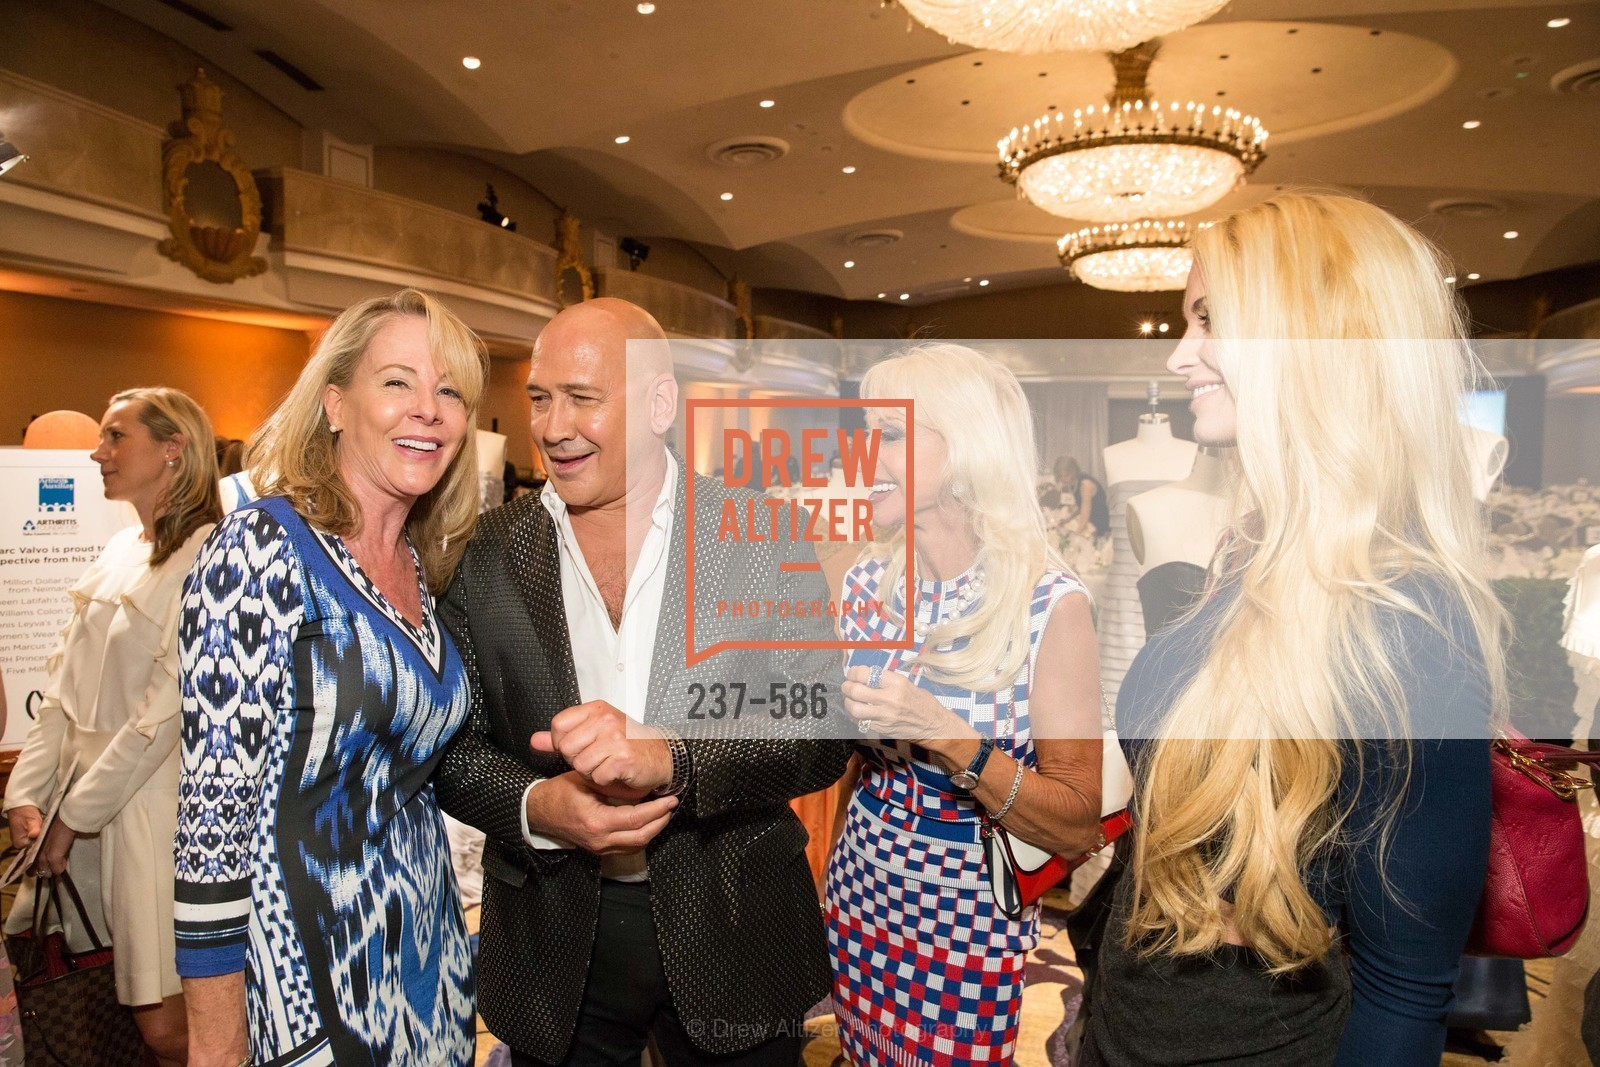 Lyhn Haller, Carmen Marc Valvo, Daru Kawalkowski, Tiara Cameron, 2014 Bay Area ARTHRITIS AUXILLIARY Benefit & Fashion Show, US, October 2nd, 2014,Drew Altizer, Drew Altizer Photography, full-service agency, private events, San Francisco photographer, photographer california